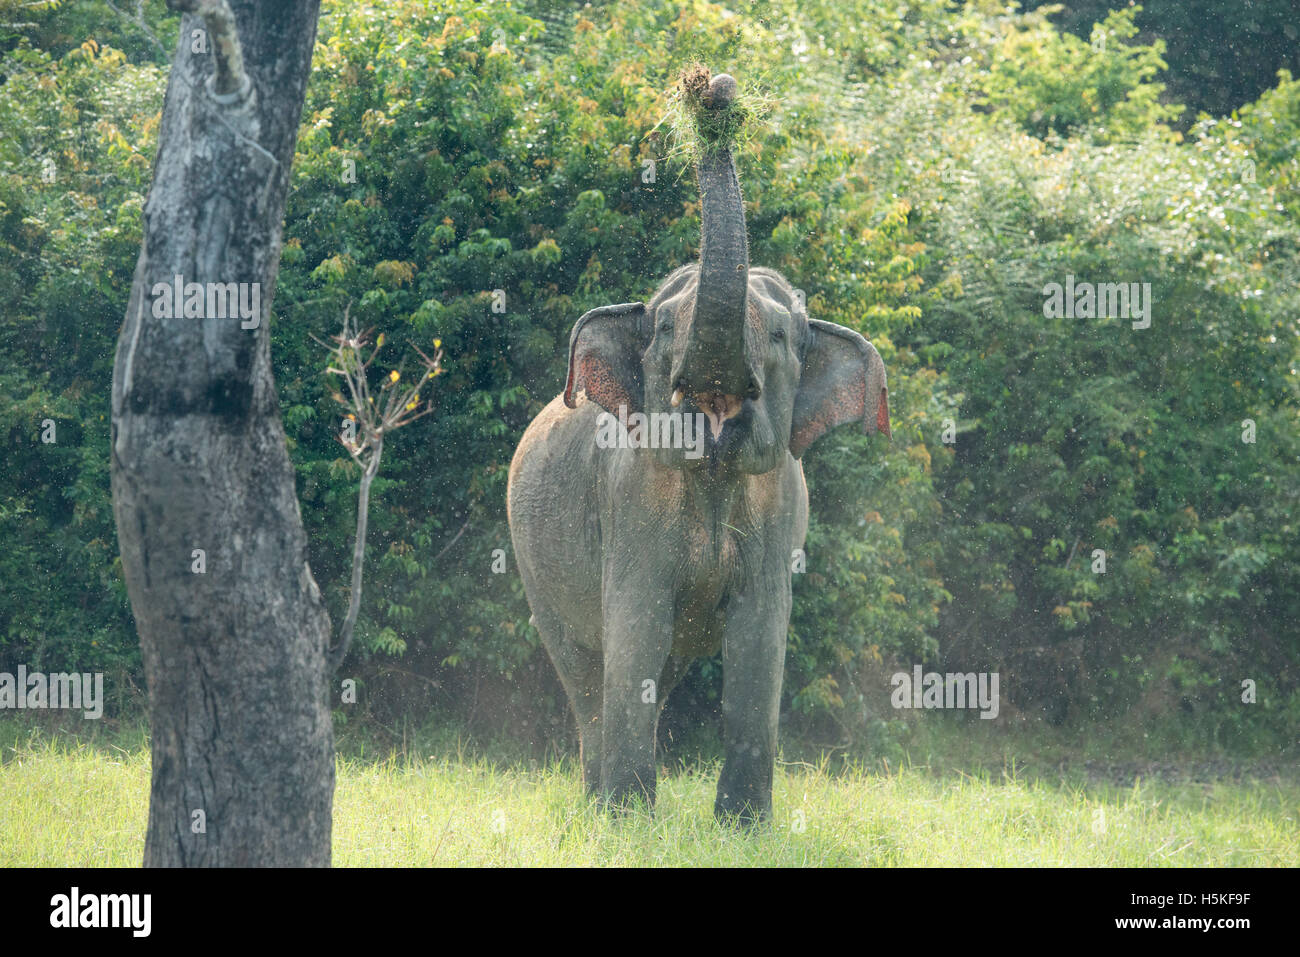 Asiatischer Elefant, Elephas Maximus, Gal Oya Nationalpark, Sri Lanka Stockbild